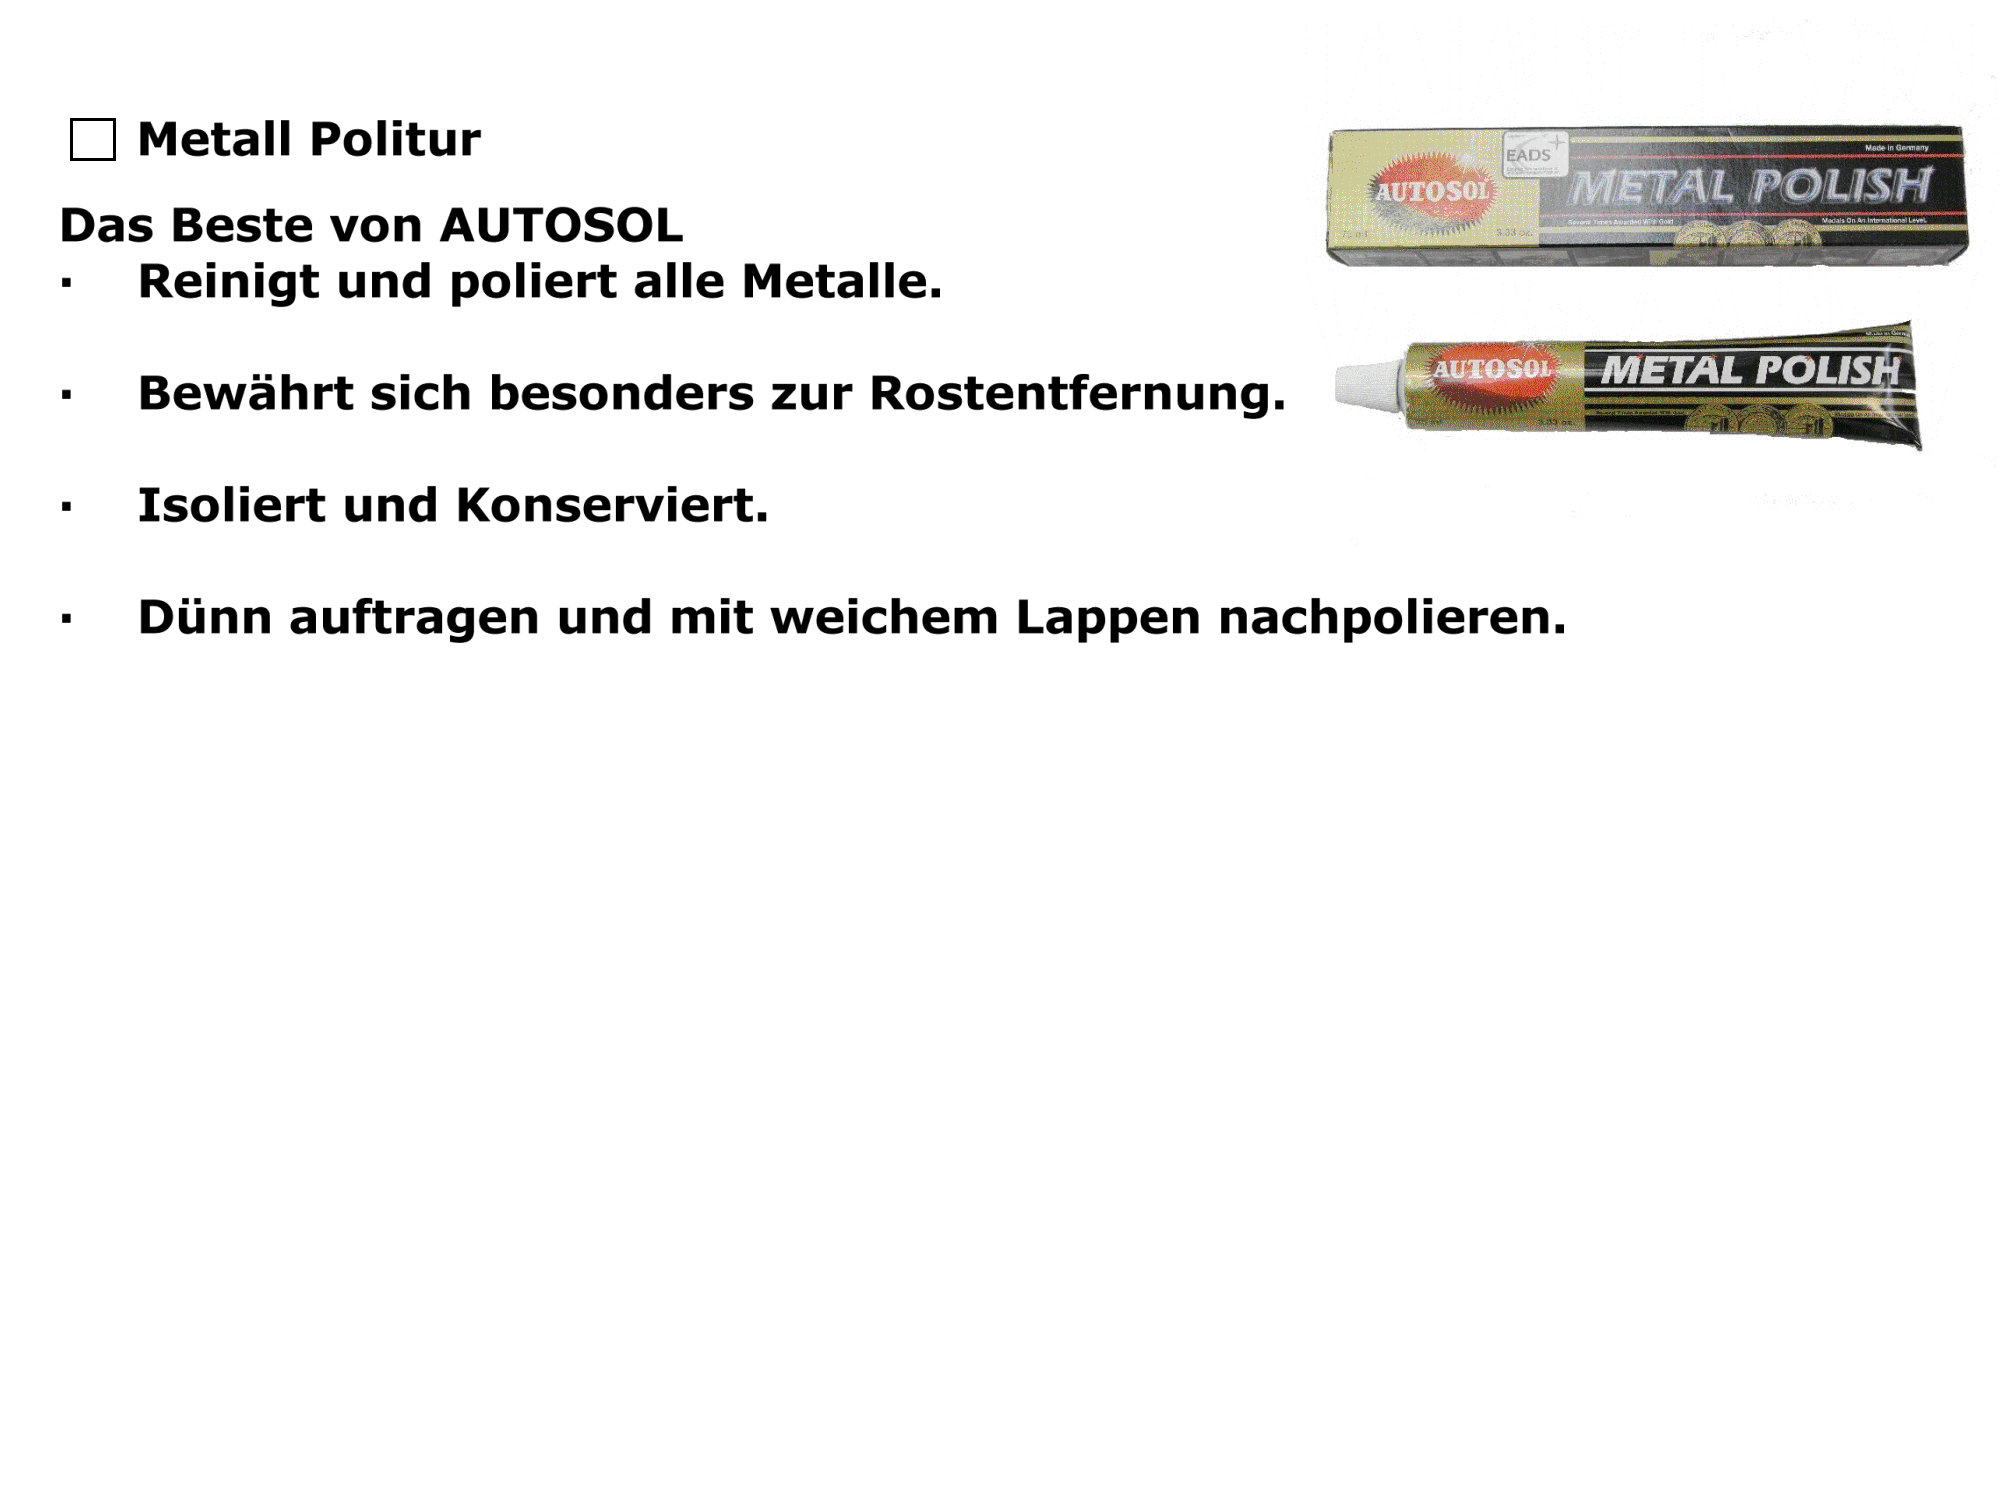 Metall-, Chrom Politur